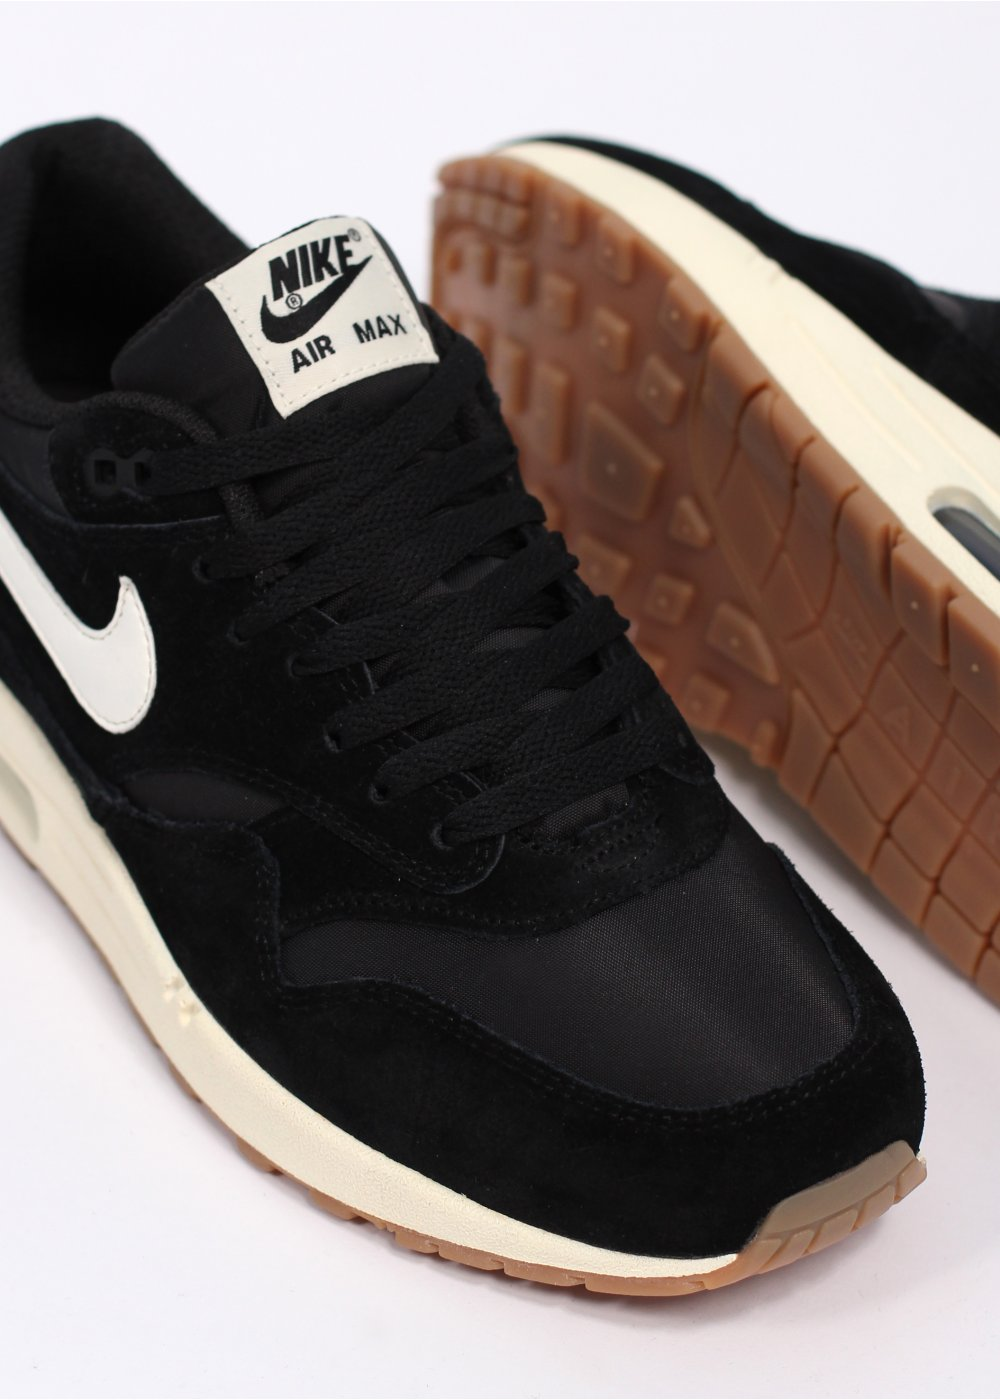 air max 1 essential black sail